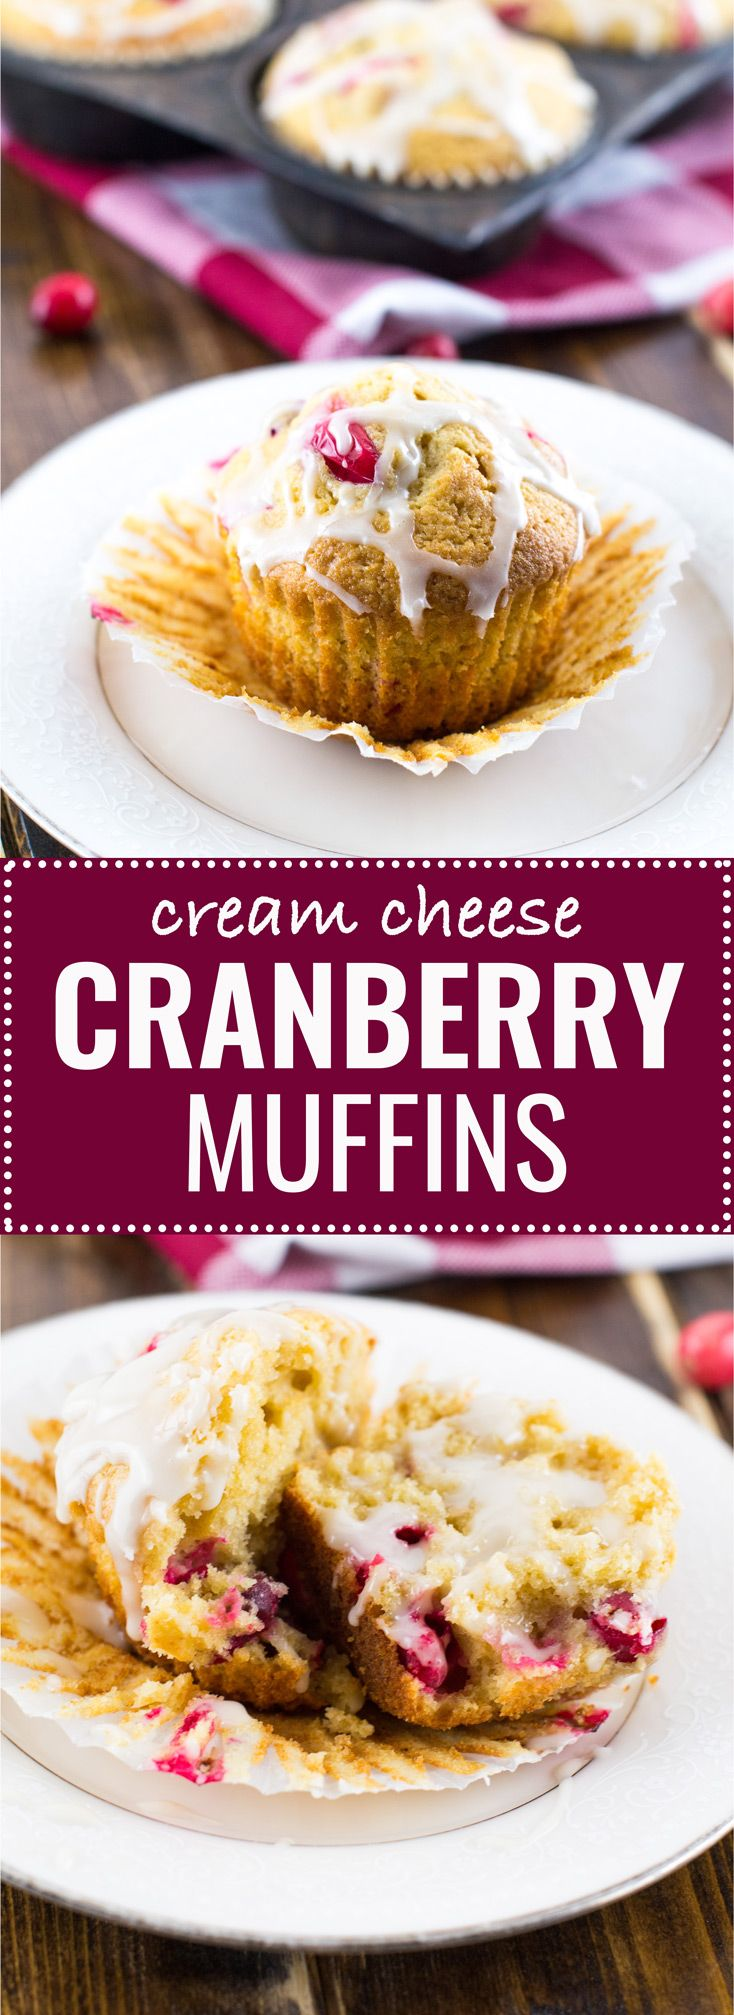 whole wheat cranberry cream cheese muffins are the perfect Christmas morning breakfast! These taste fresh out of a bakery and your family will be begging you to make more! #cranberry #creamcheese #muffins #christmas